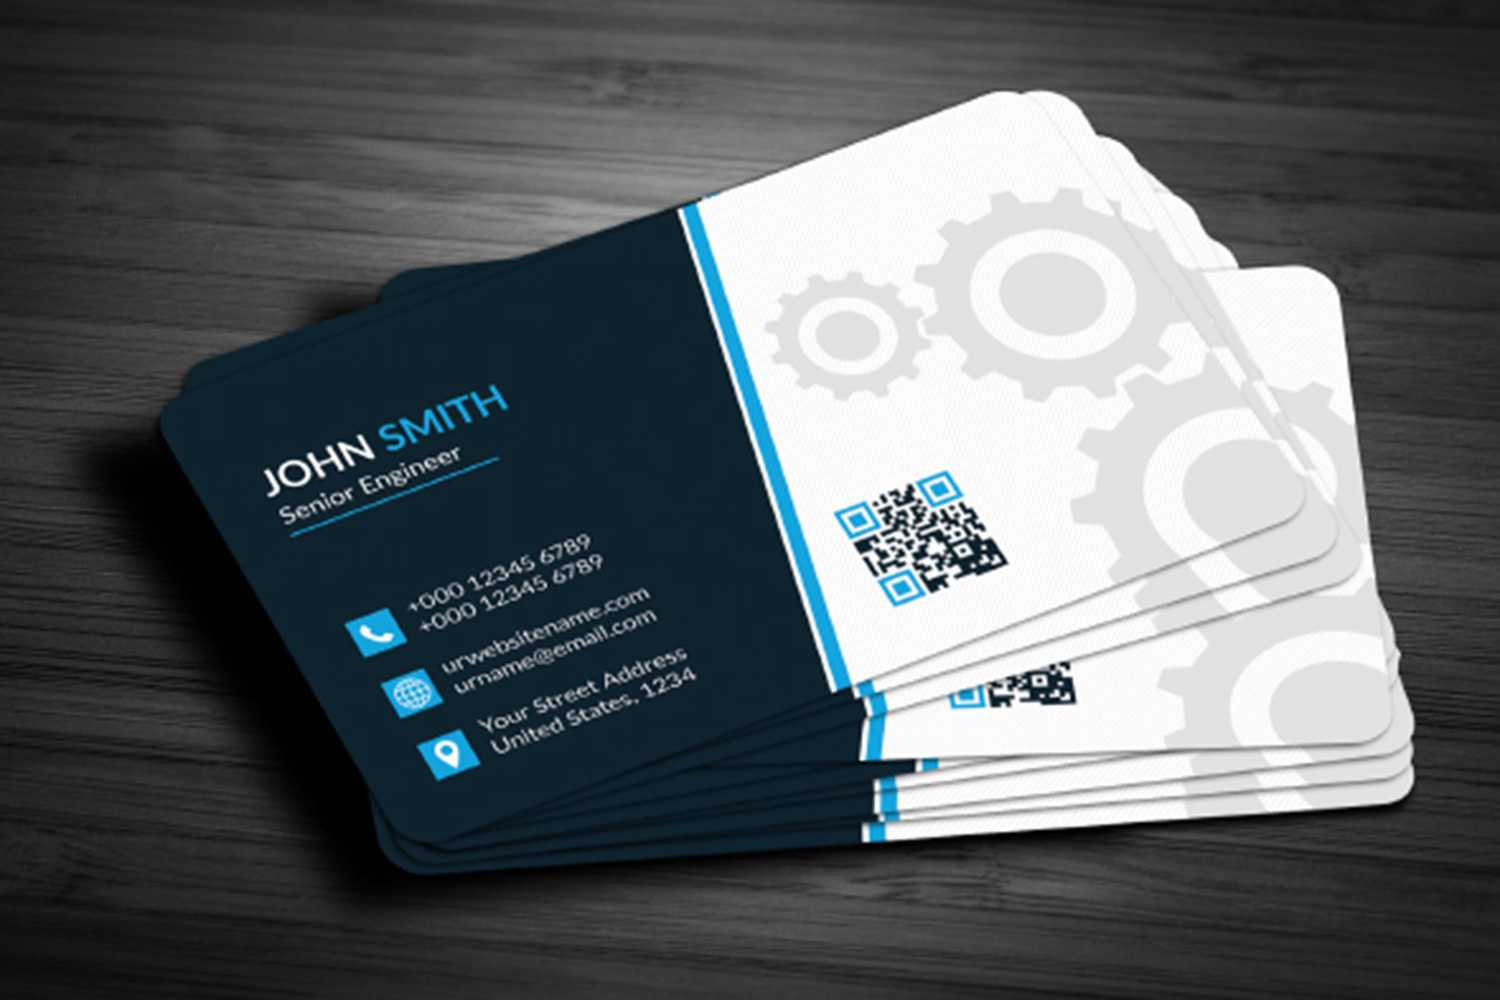 028 Business Card Template Free Download Maxpoint Hridoy Inside Engineering Brochure Templates Free Download